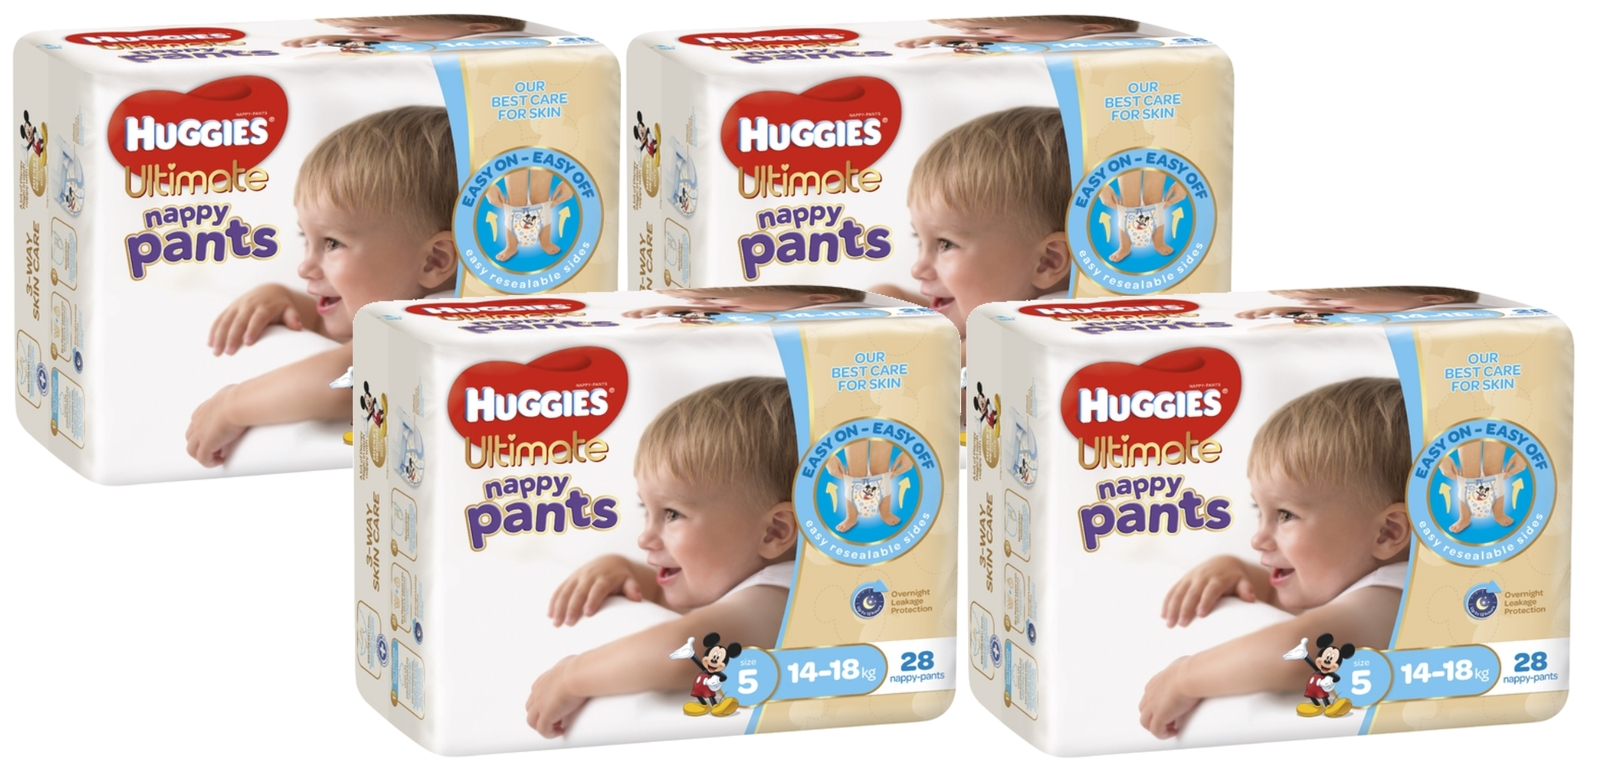 Huggies Ultimate Nappy Pants Bulk Shipper - Walker Boy 14-18kgs (112) image